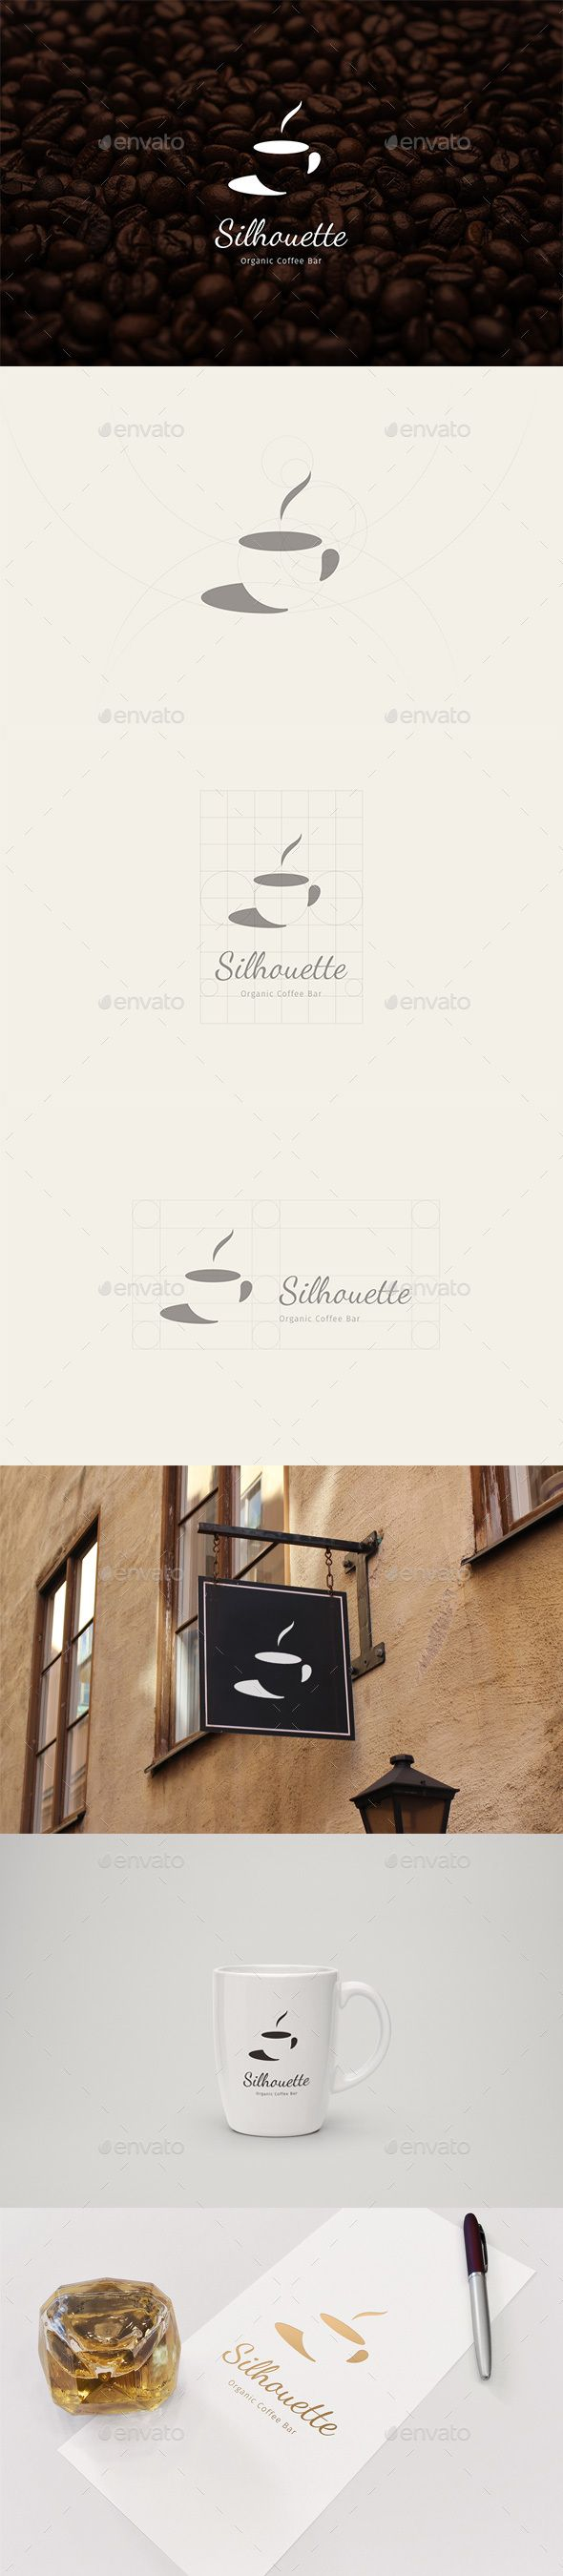 Silhouette Organic Coffee Bar Logo,bar, branding, cafe, coffee, coffeeshop, logo, logodesign, modern, refined, signage, silhouette, simple